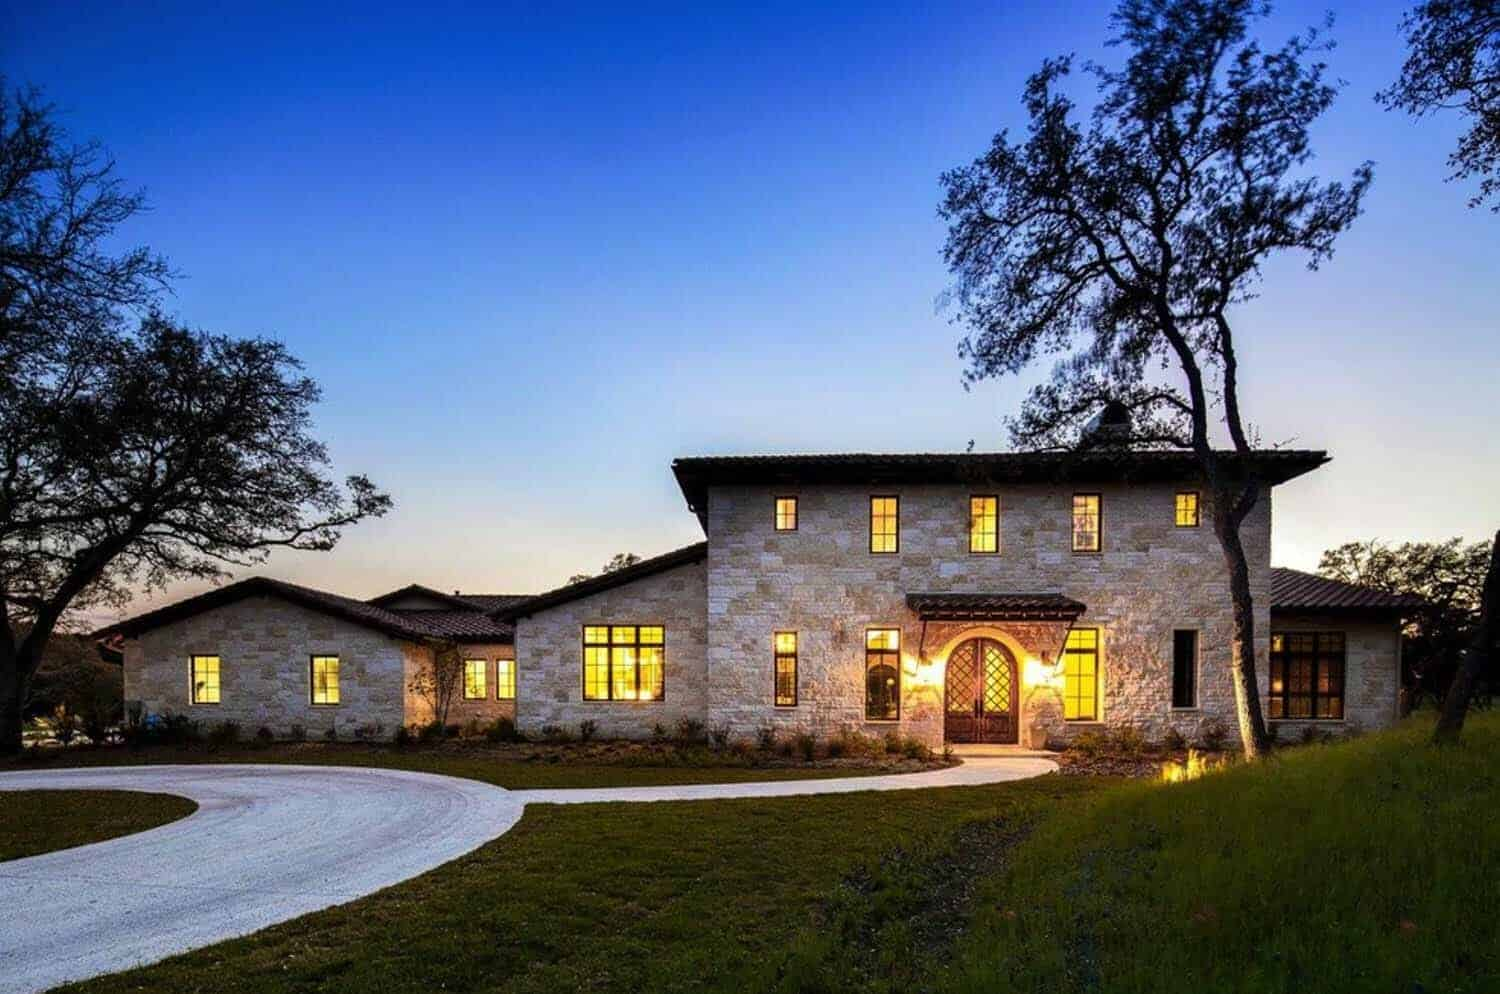 Mediterran Haus Mediterranean Inspired Home Meets Texas Hill Country Modern